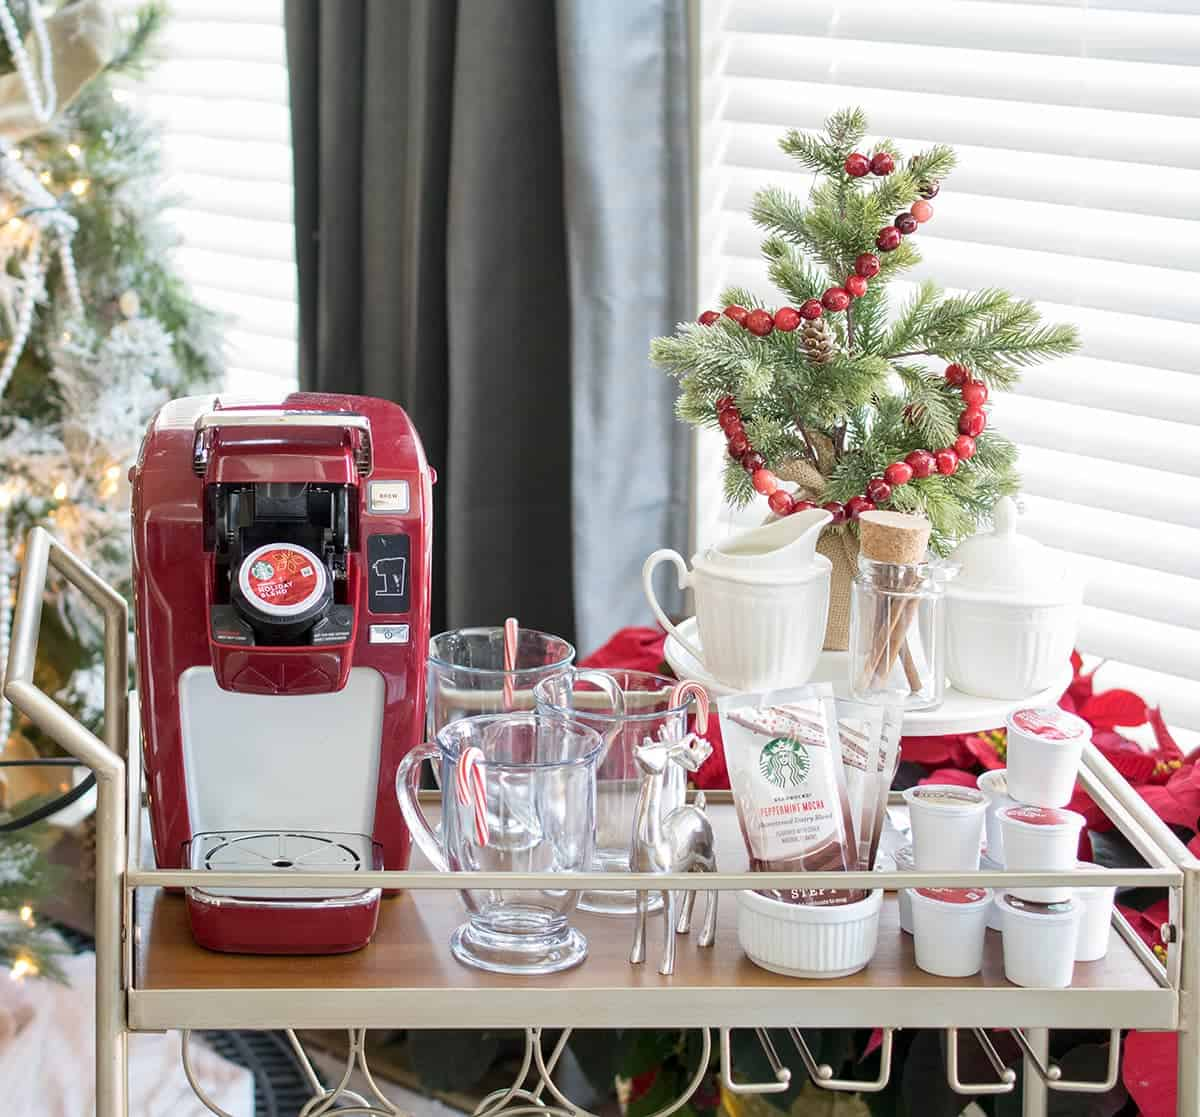 DIY bar cart styling for a keurig coffee bar. Create a coffee station on the go on a bar cart for guests and friends.